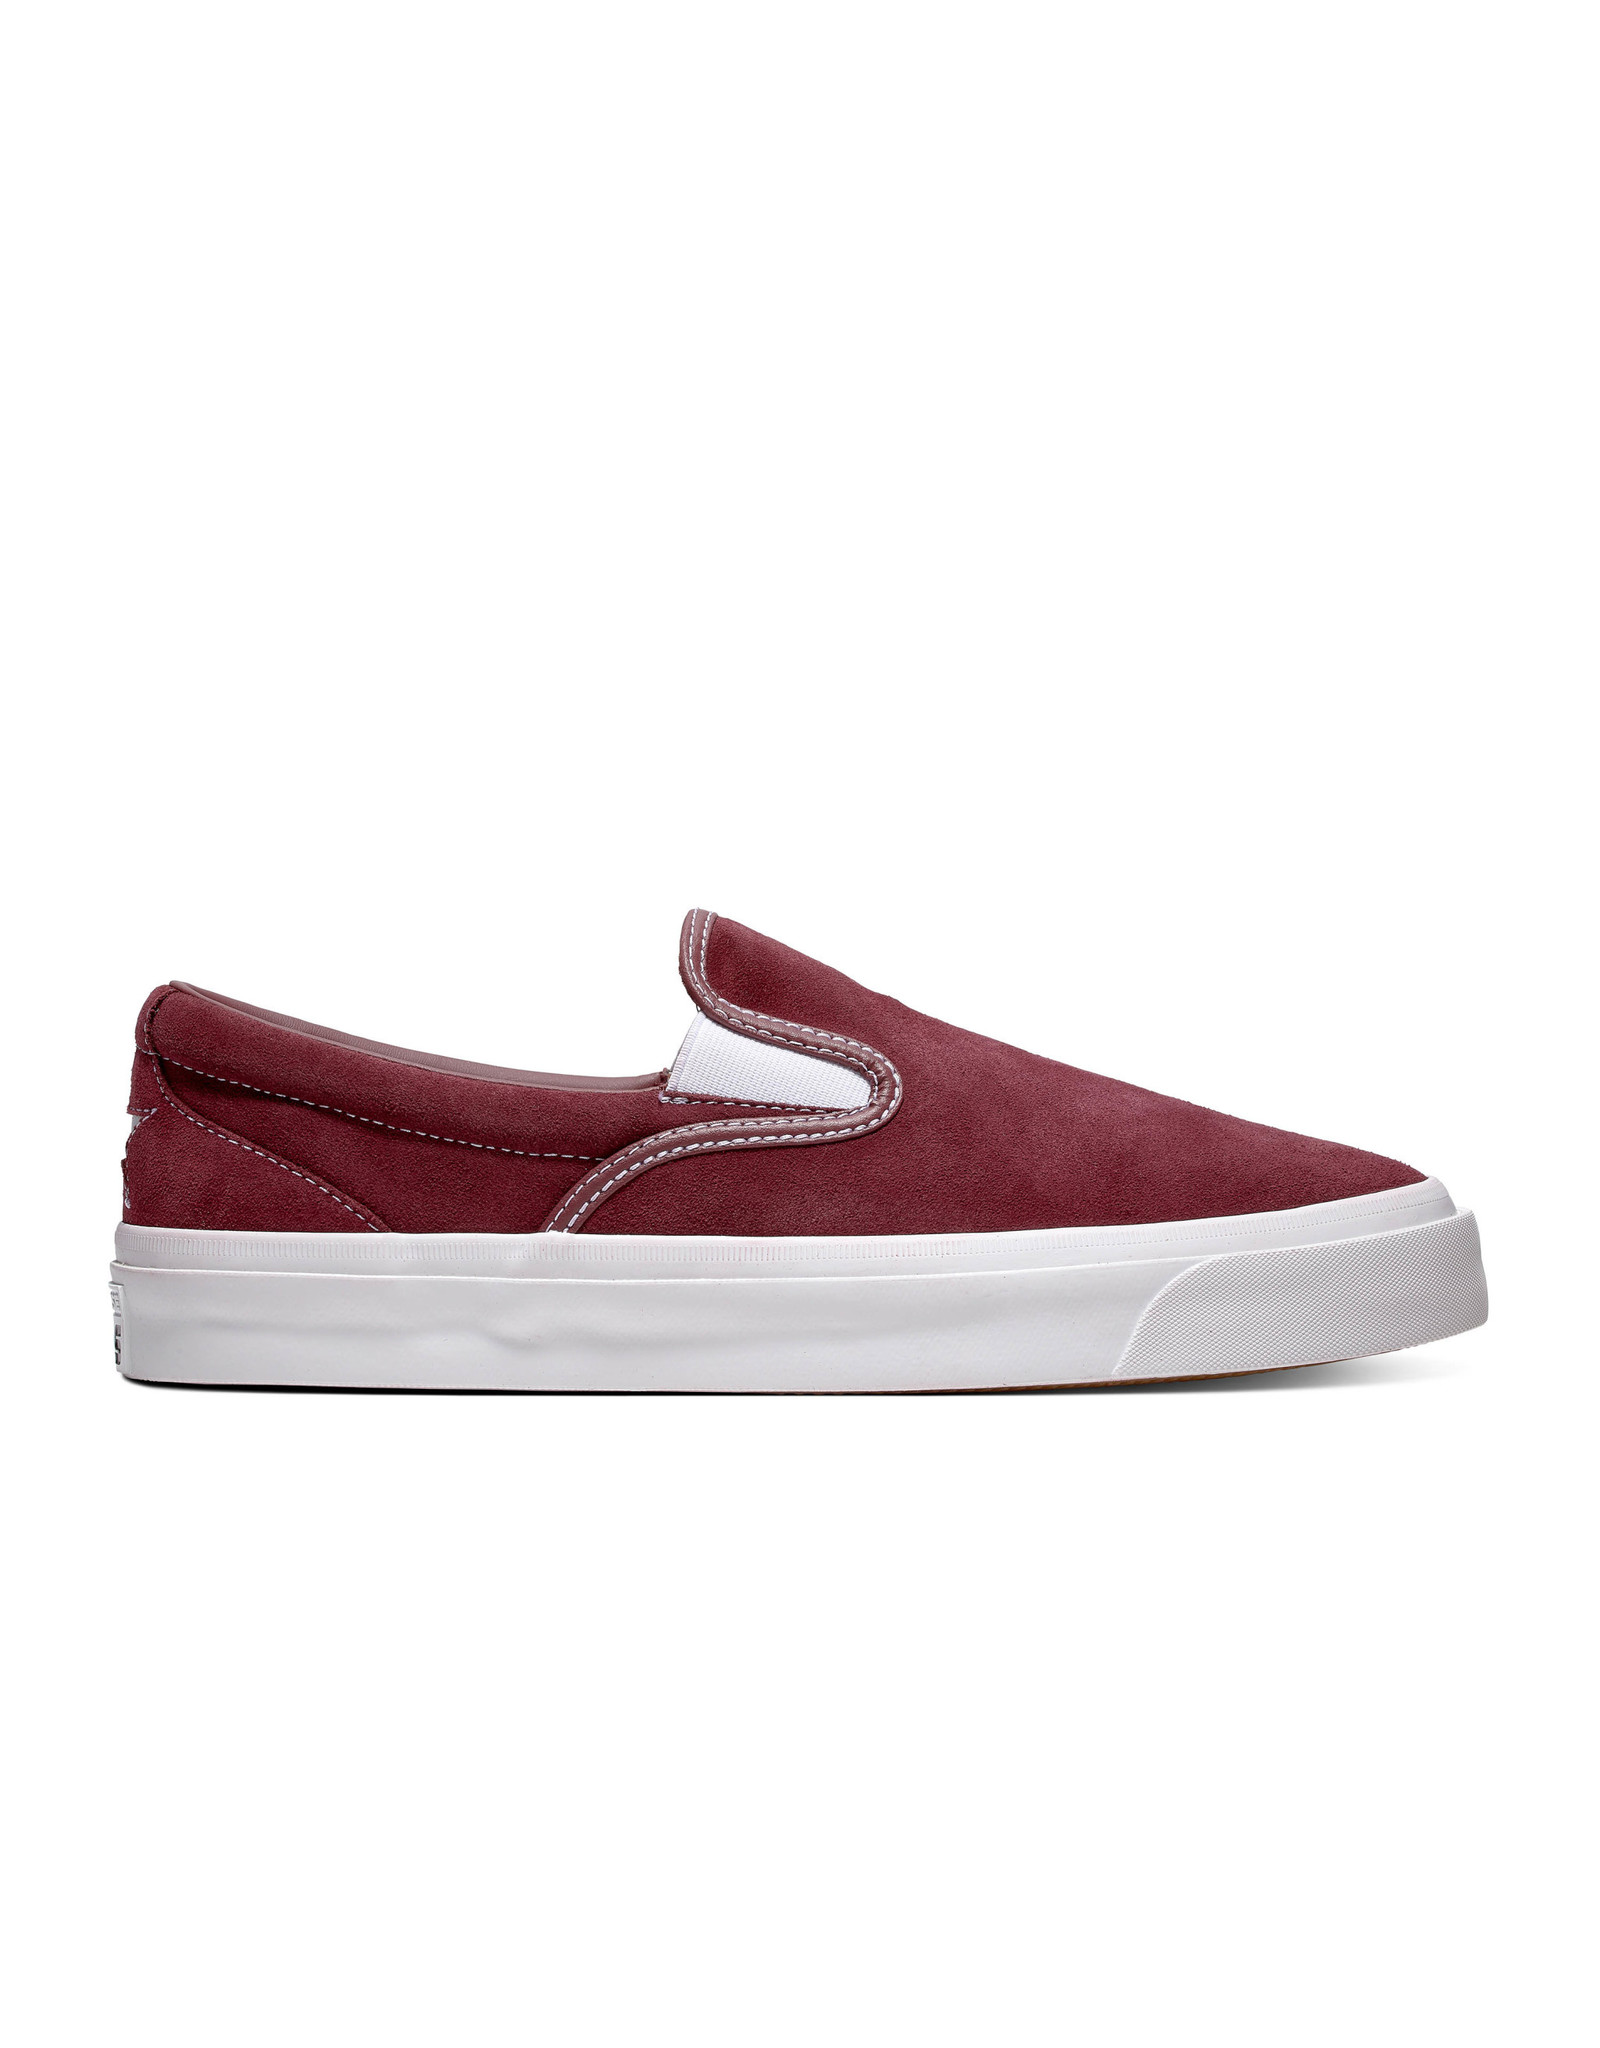 CONVERSE ONE STAR CC SLIP PRO SUEDE DARK BURGUNDY/WHITE CS987SPD-164157C